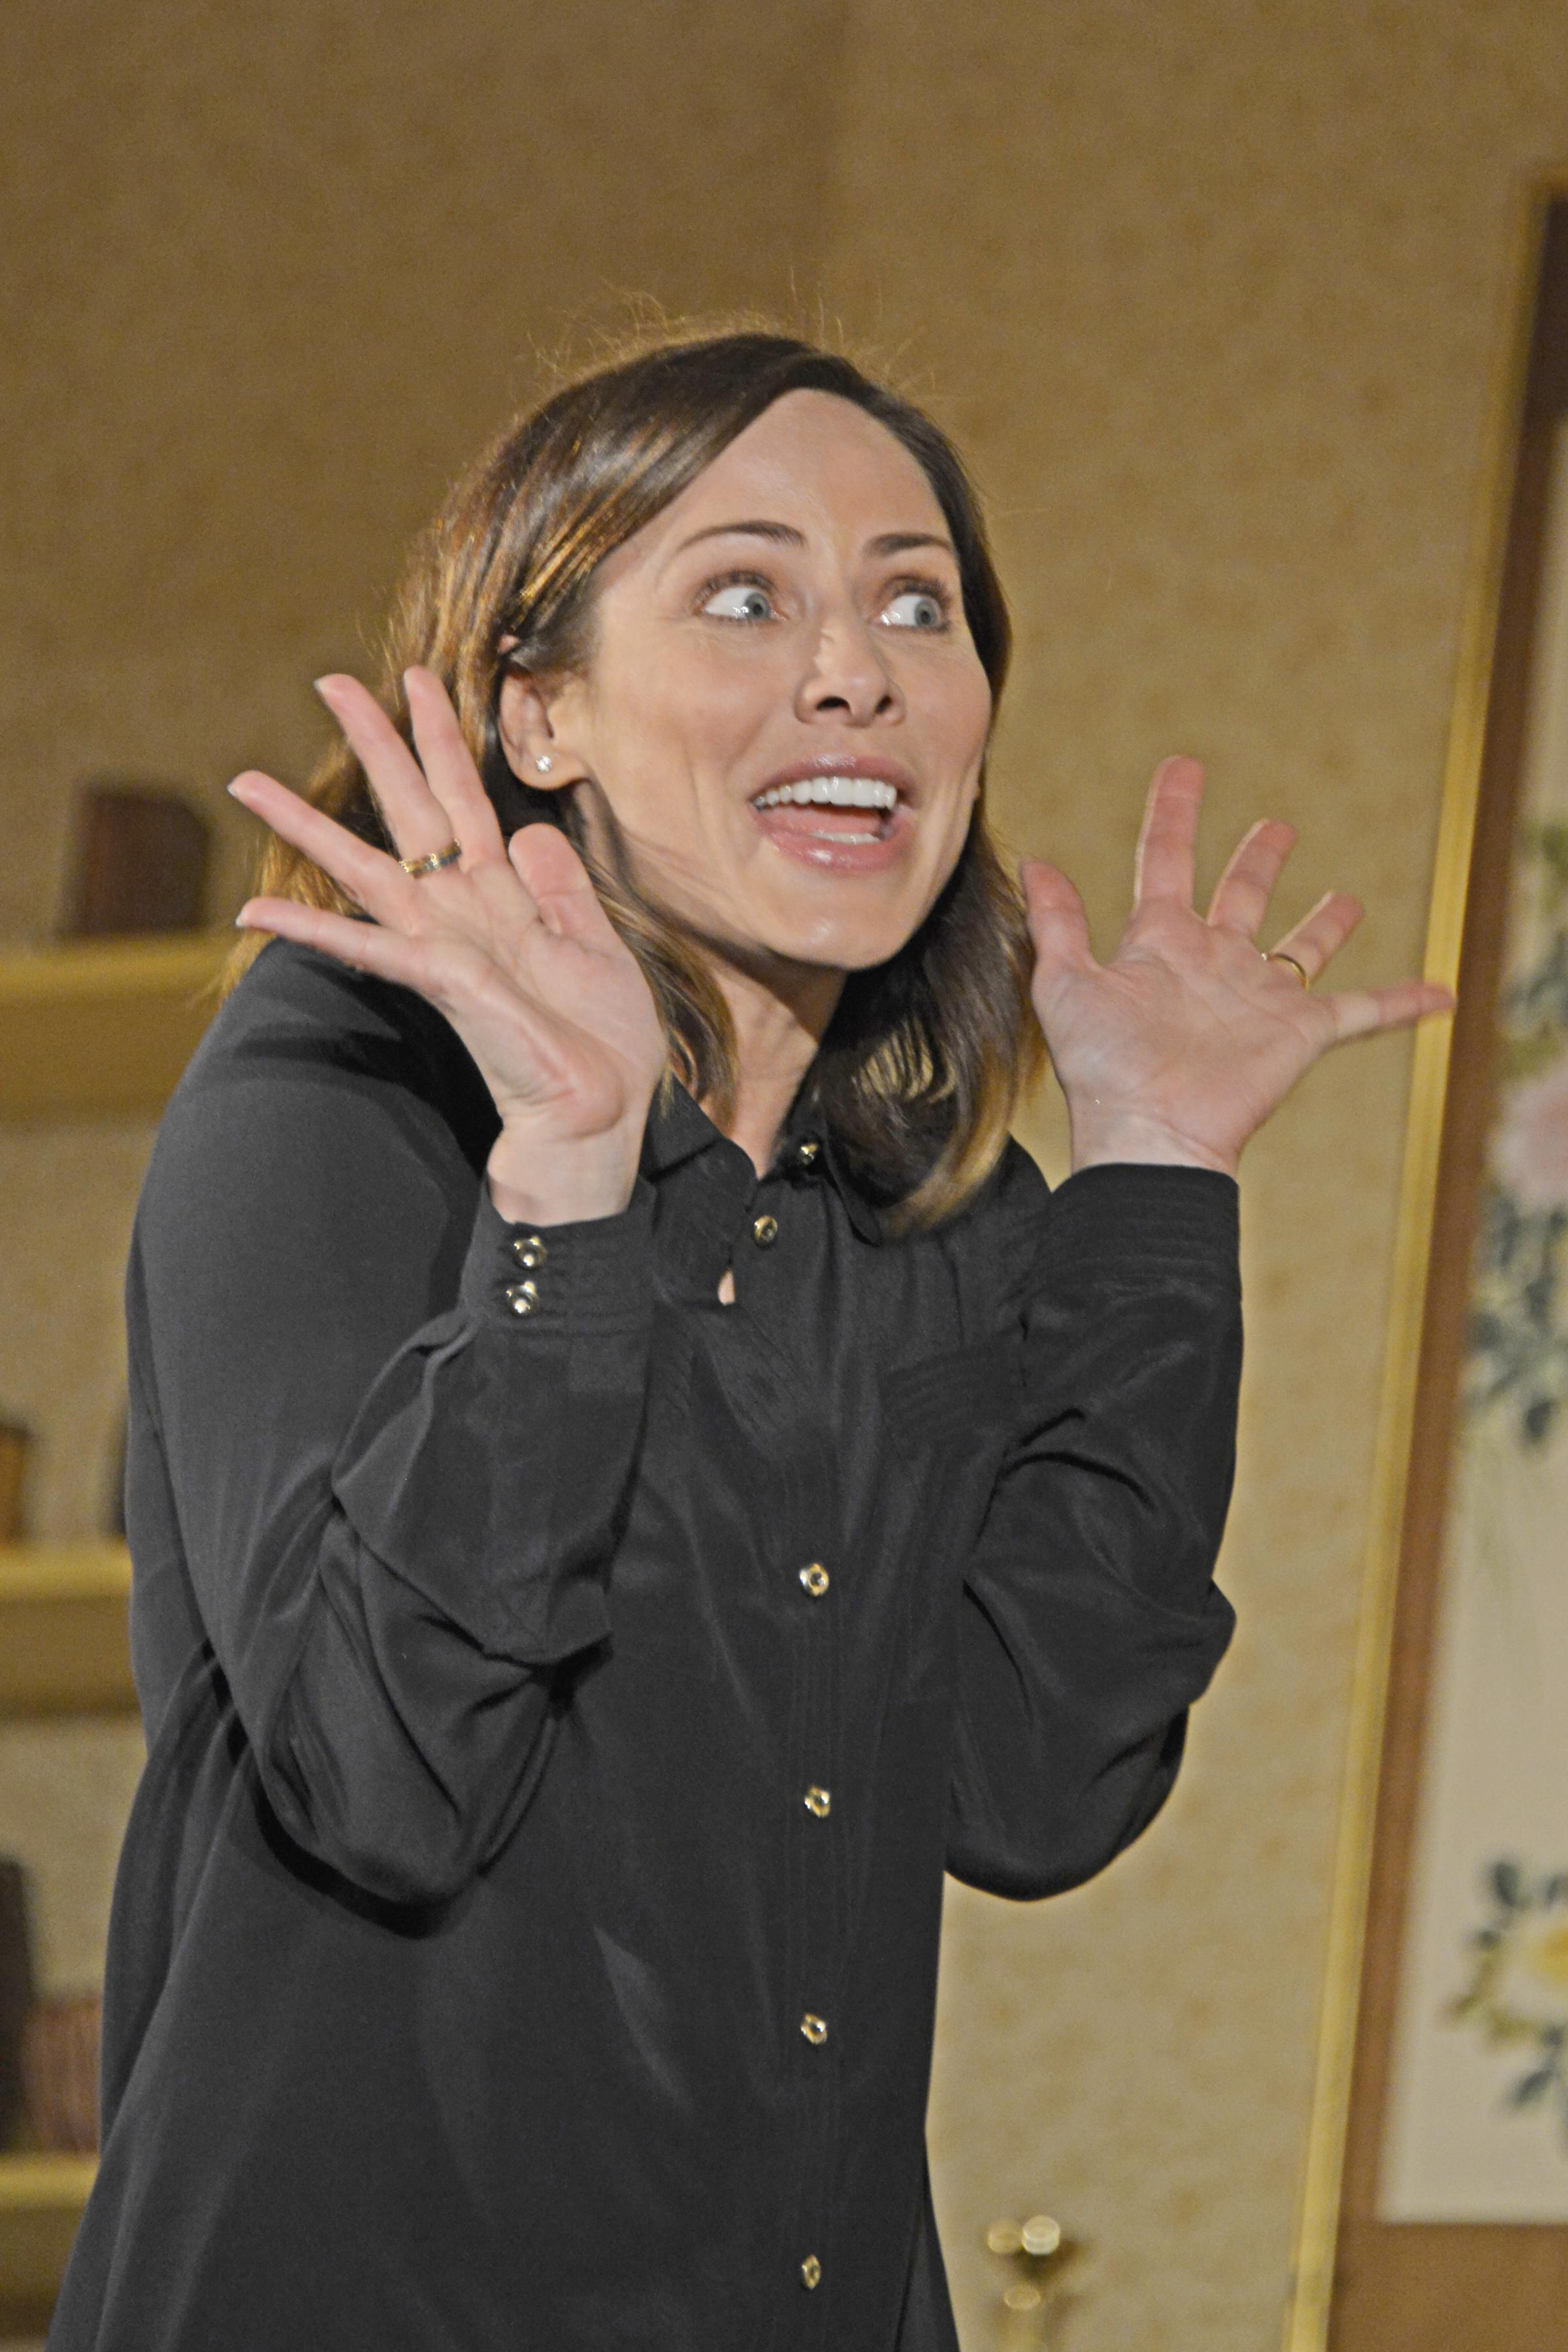 Natalie Imbruglia talks about theatre debut, heading to Bromley, Kylie's support and auditioning over Skype